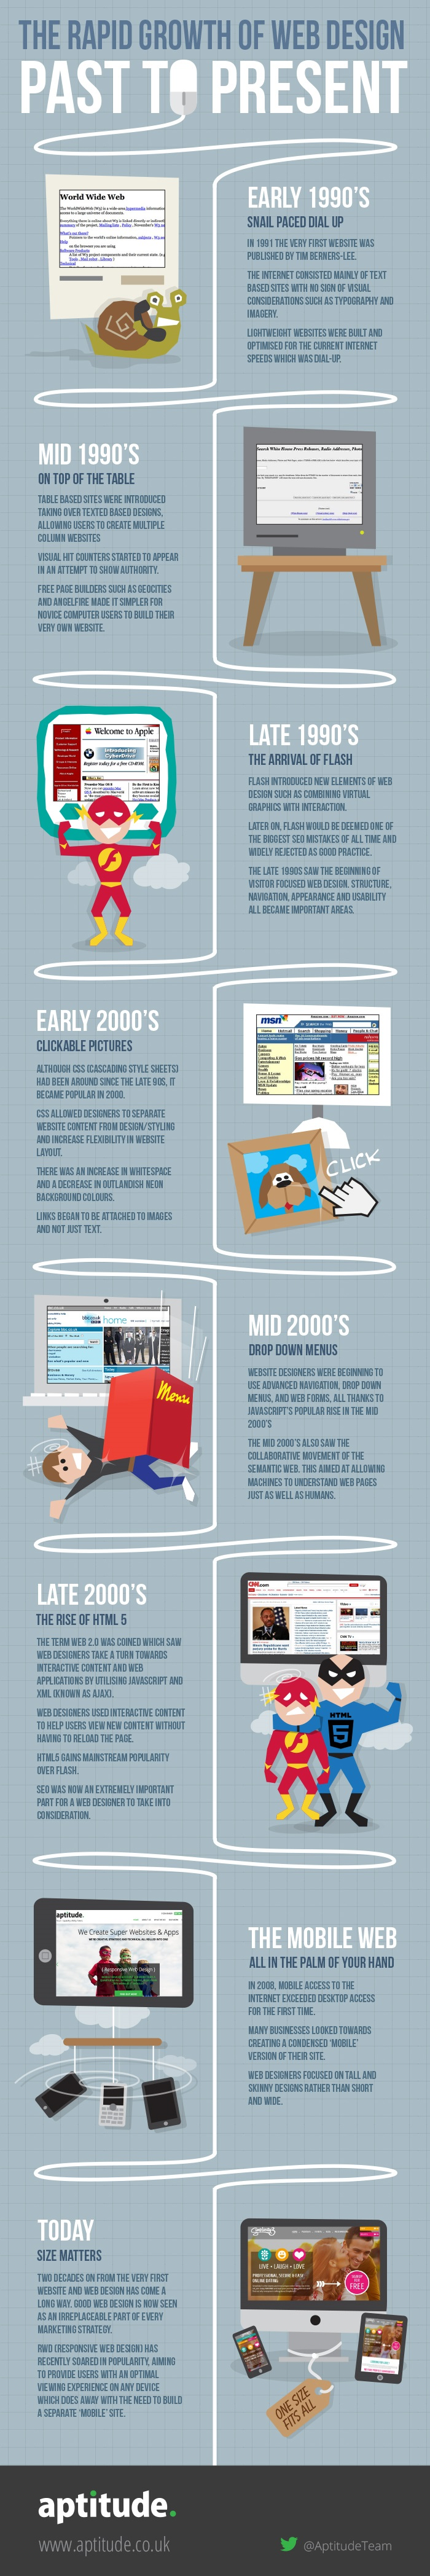 The Rapid Growth of Web Design: Past to Present (Infographic)